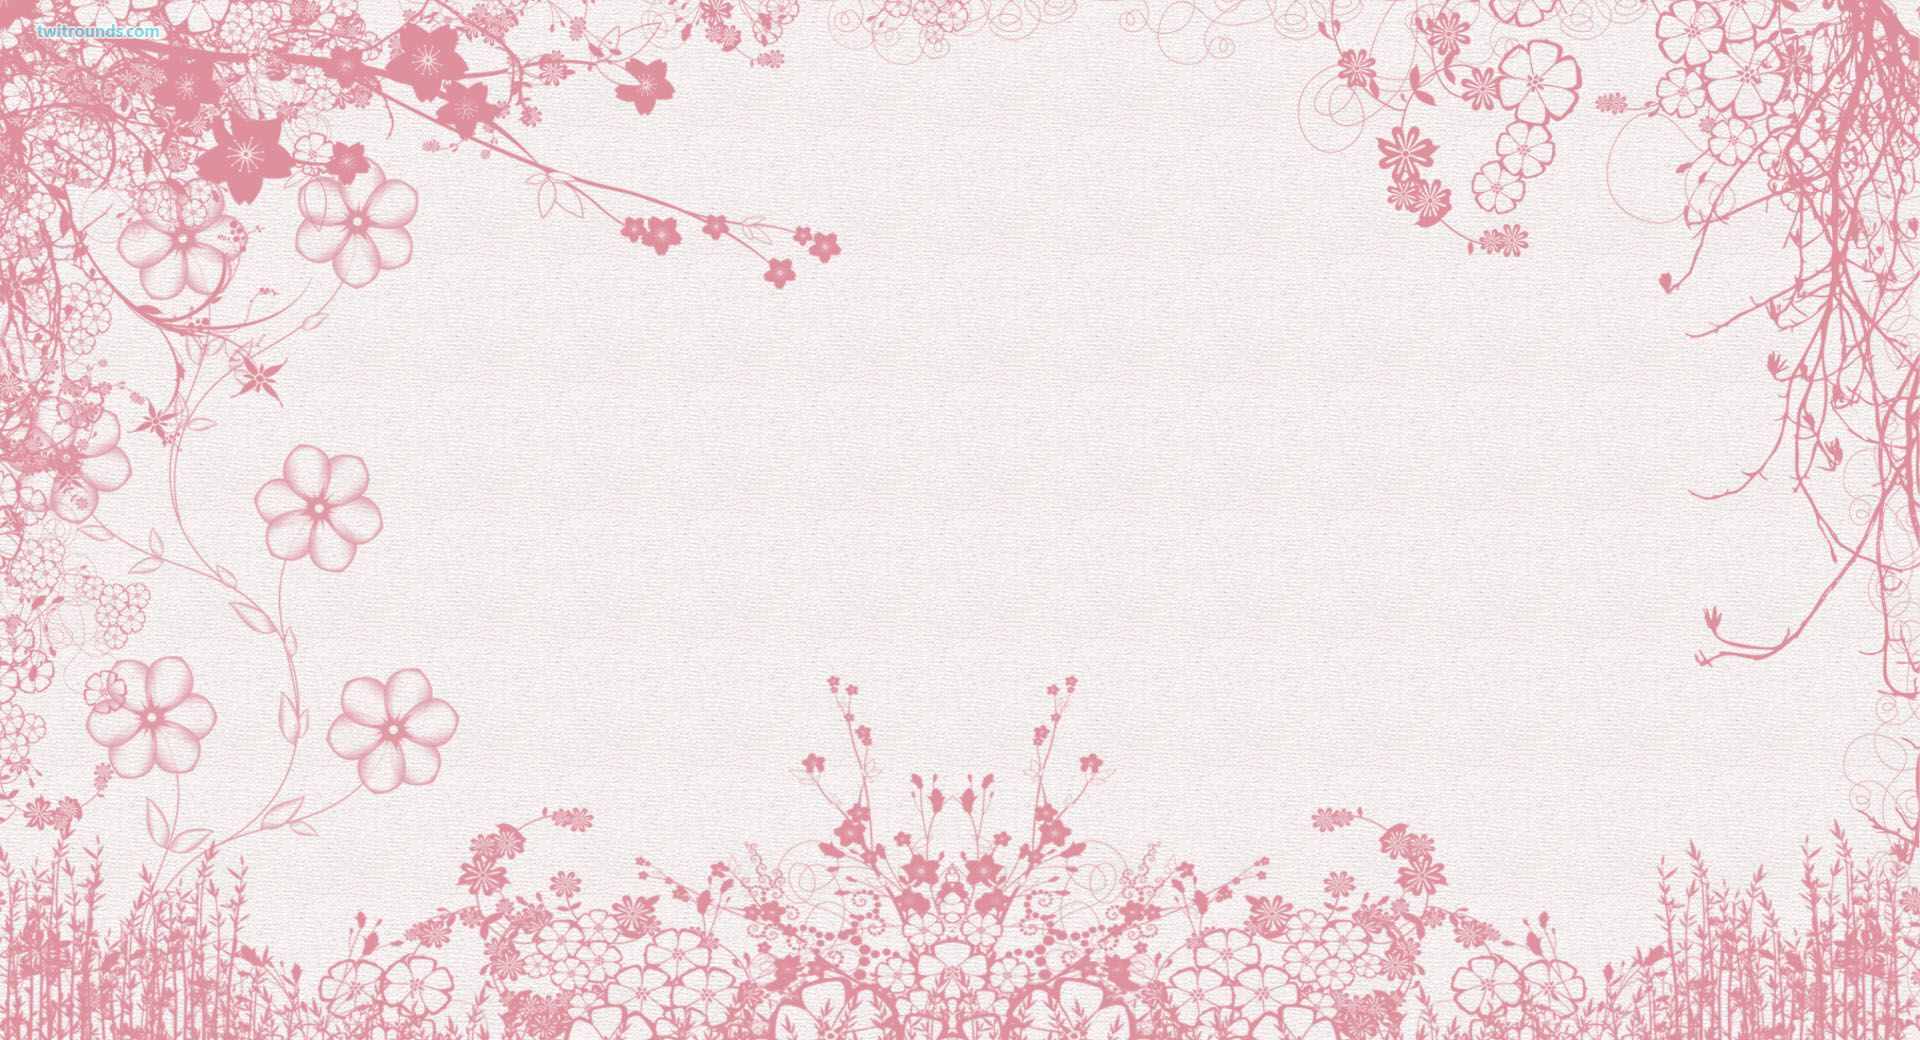 Flowerbackground pink flowers twitter background twitter wallpaper flowerbackground pink dhlflorist Choice Image